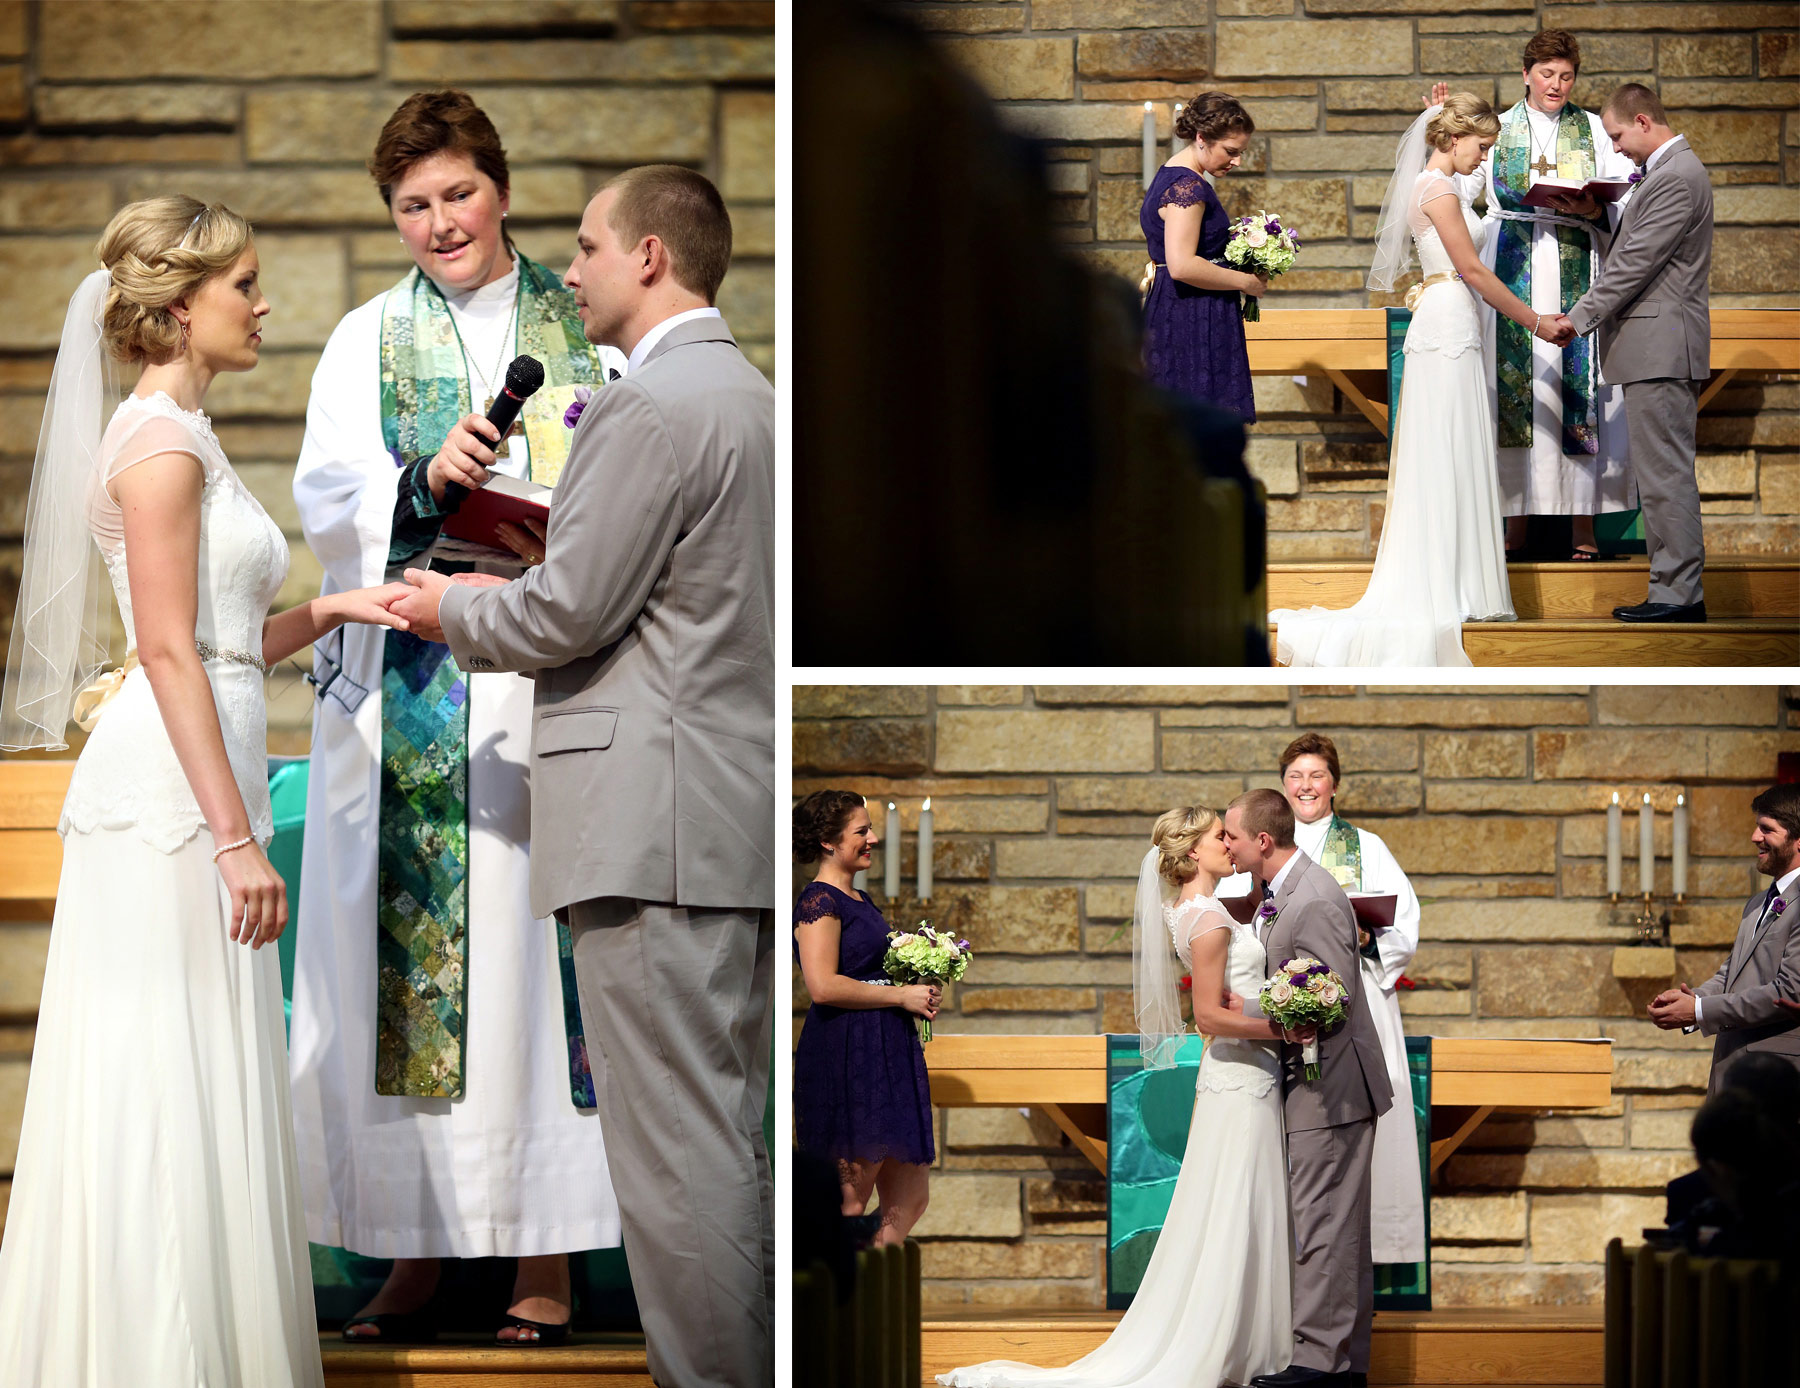 09-Minneapolis-MN-Wedding-Photography-by-Vick-Photography-Incarnation-Lutheran-Church-Ceremony-Alyssa-&-Blake.jpg